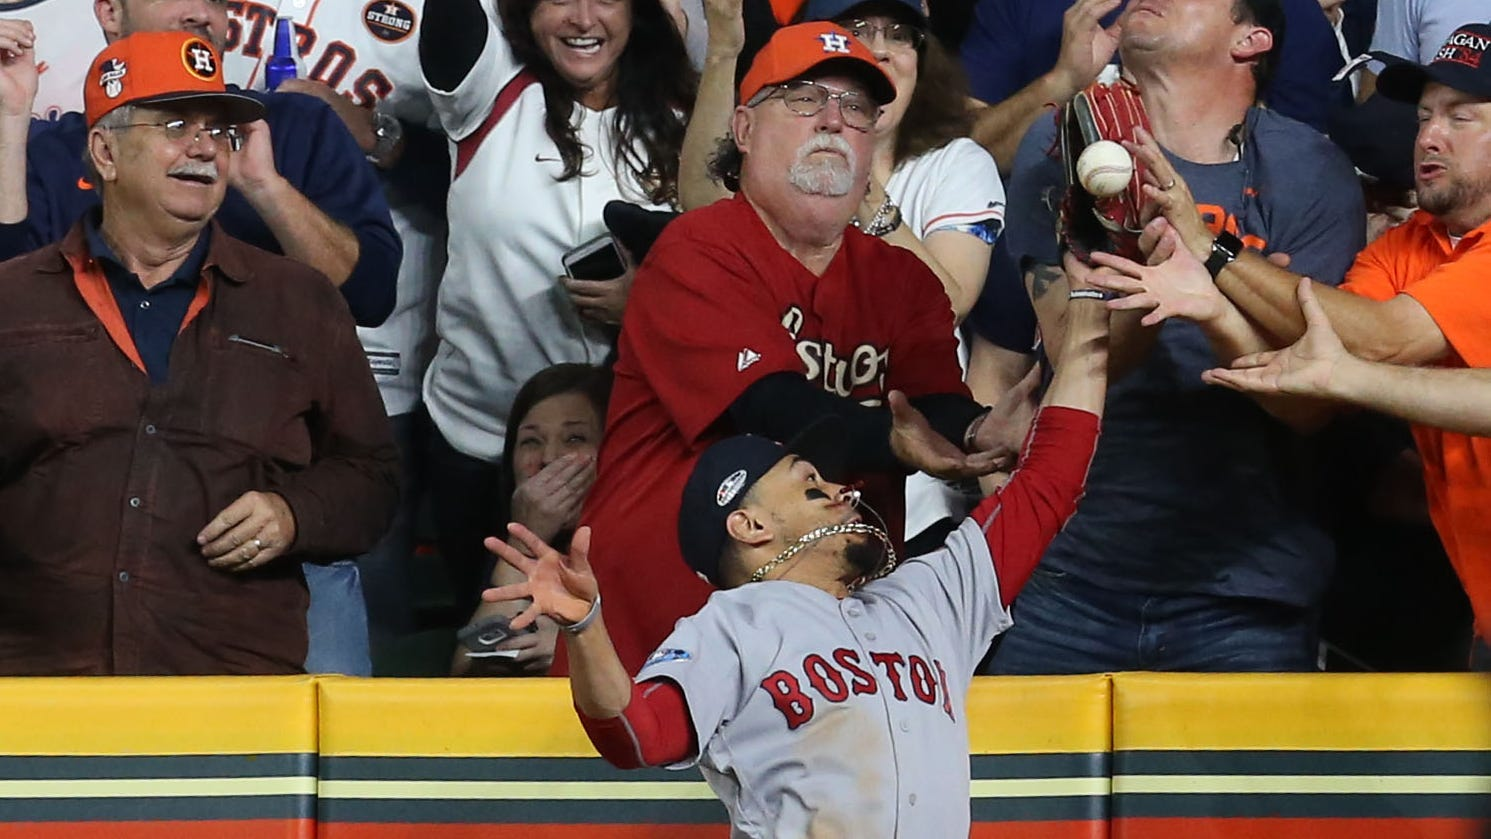 Red Sox right fielder Mookie Betts battles fans in the right field seats for a ball hit by the Astros' Jose Altuve. Umpires ruled the fans interfered with Betts and Altuve was called out.